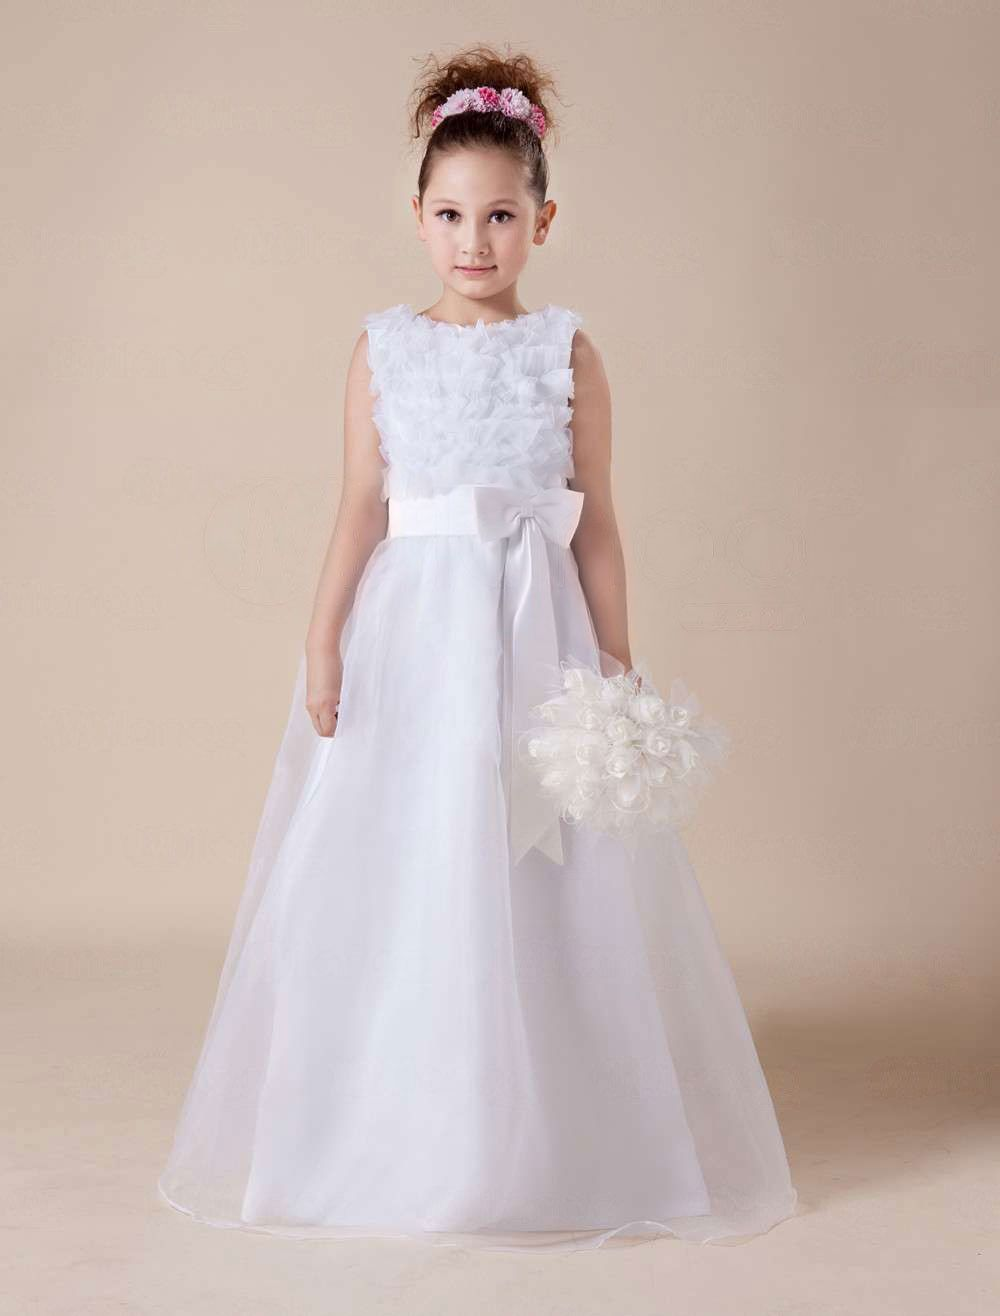 10 Best images about Flower Girl Dresses on Pinterest - Communion ...